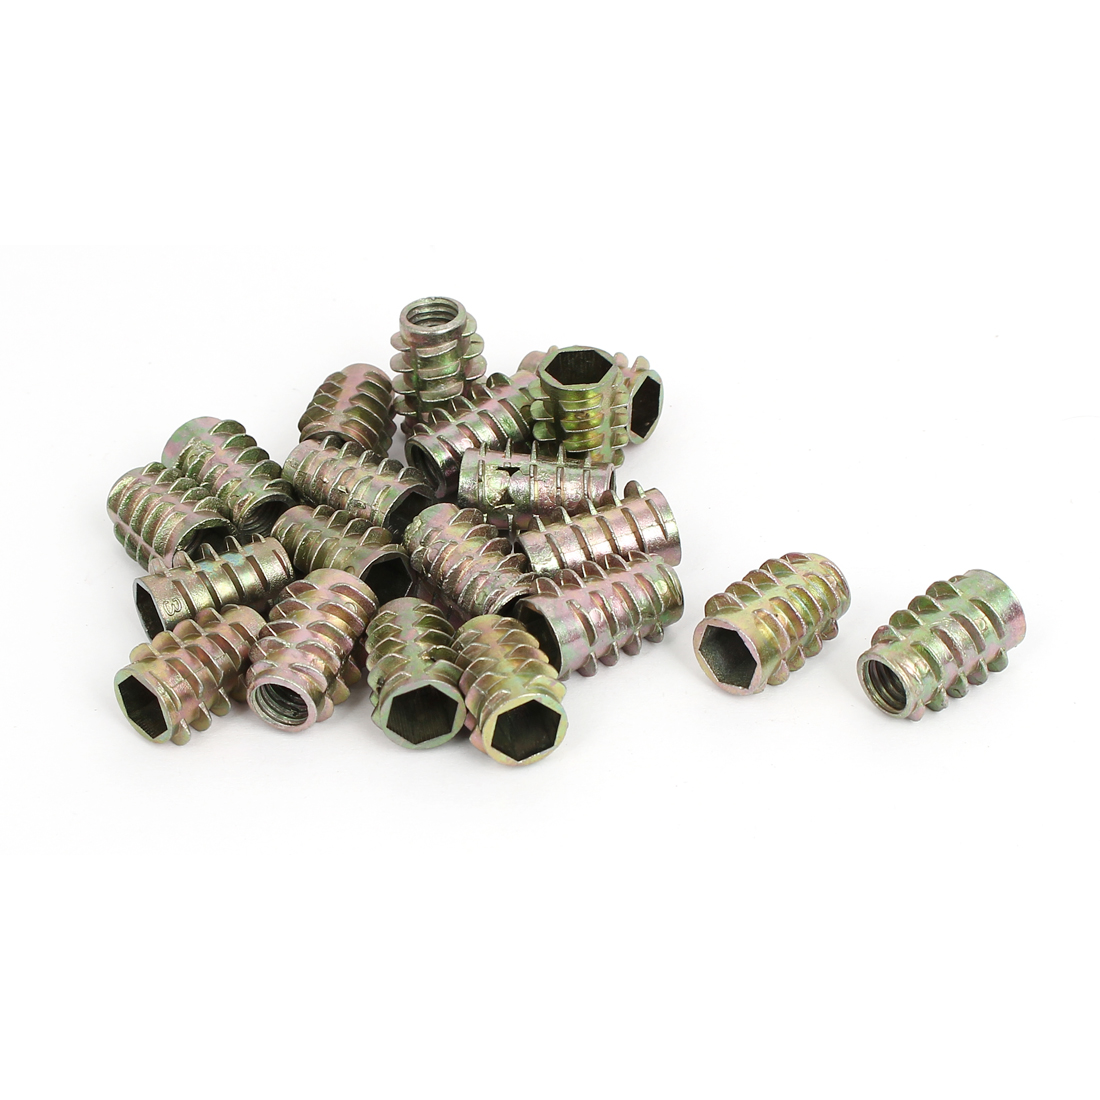 M8x20mm Zinc Plated Hex Socket Screw in Thread Insert Nut 20pcs for Wood